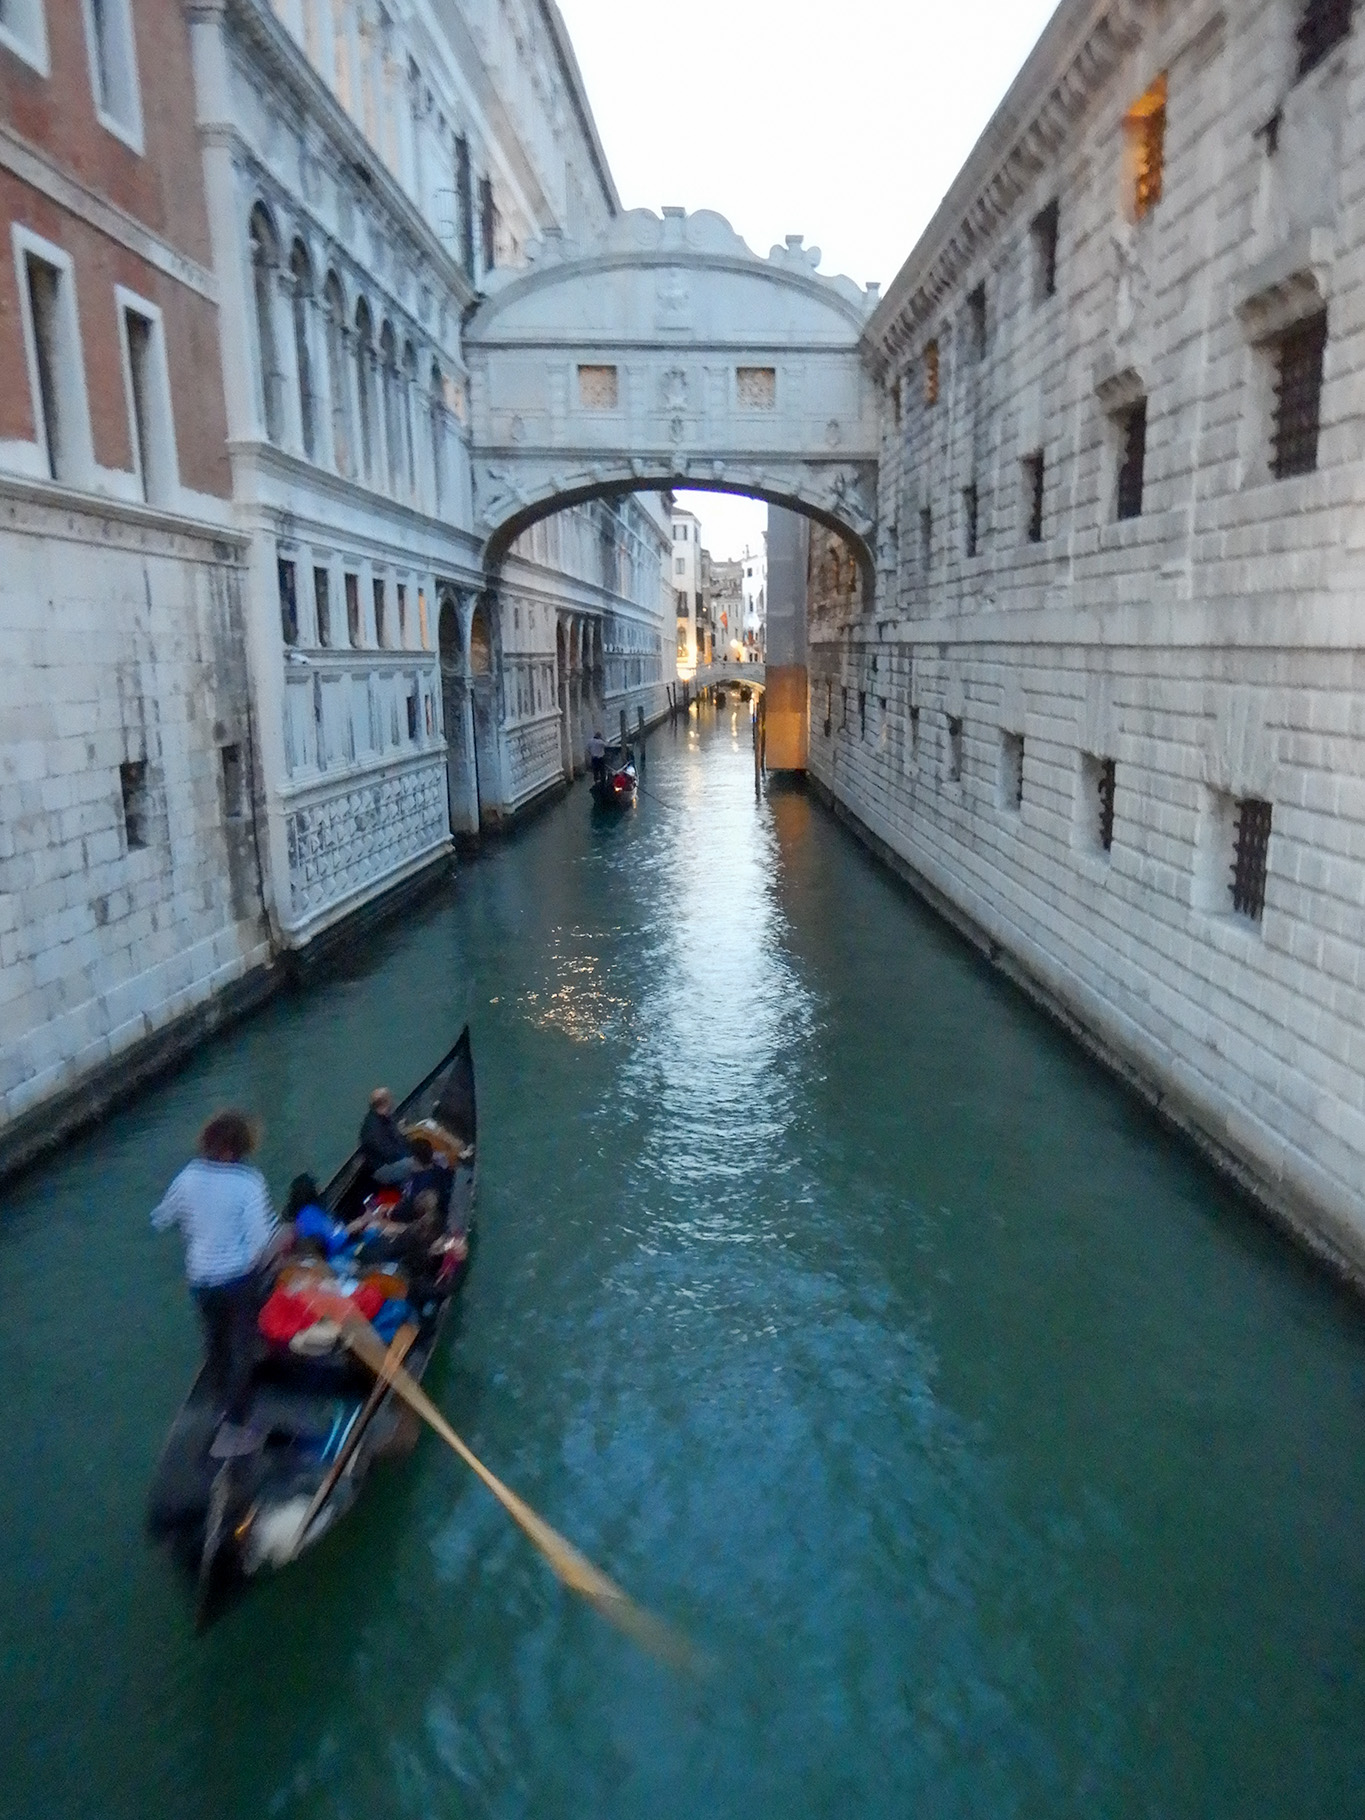 Dozens of gondolas full of tourists wend their way in the canals near St Marks Square.